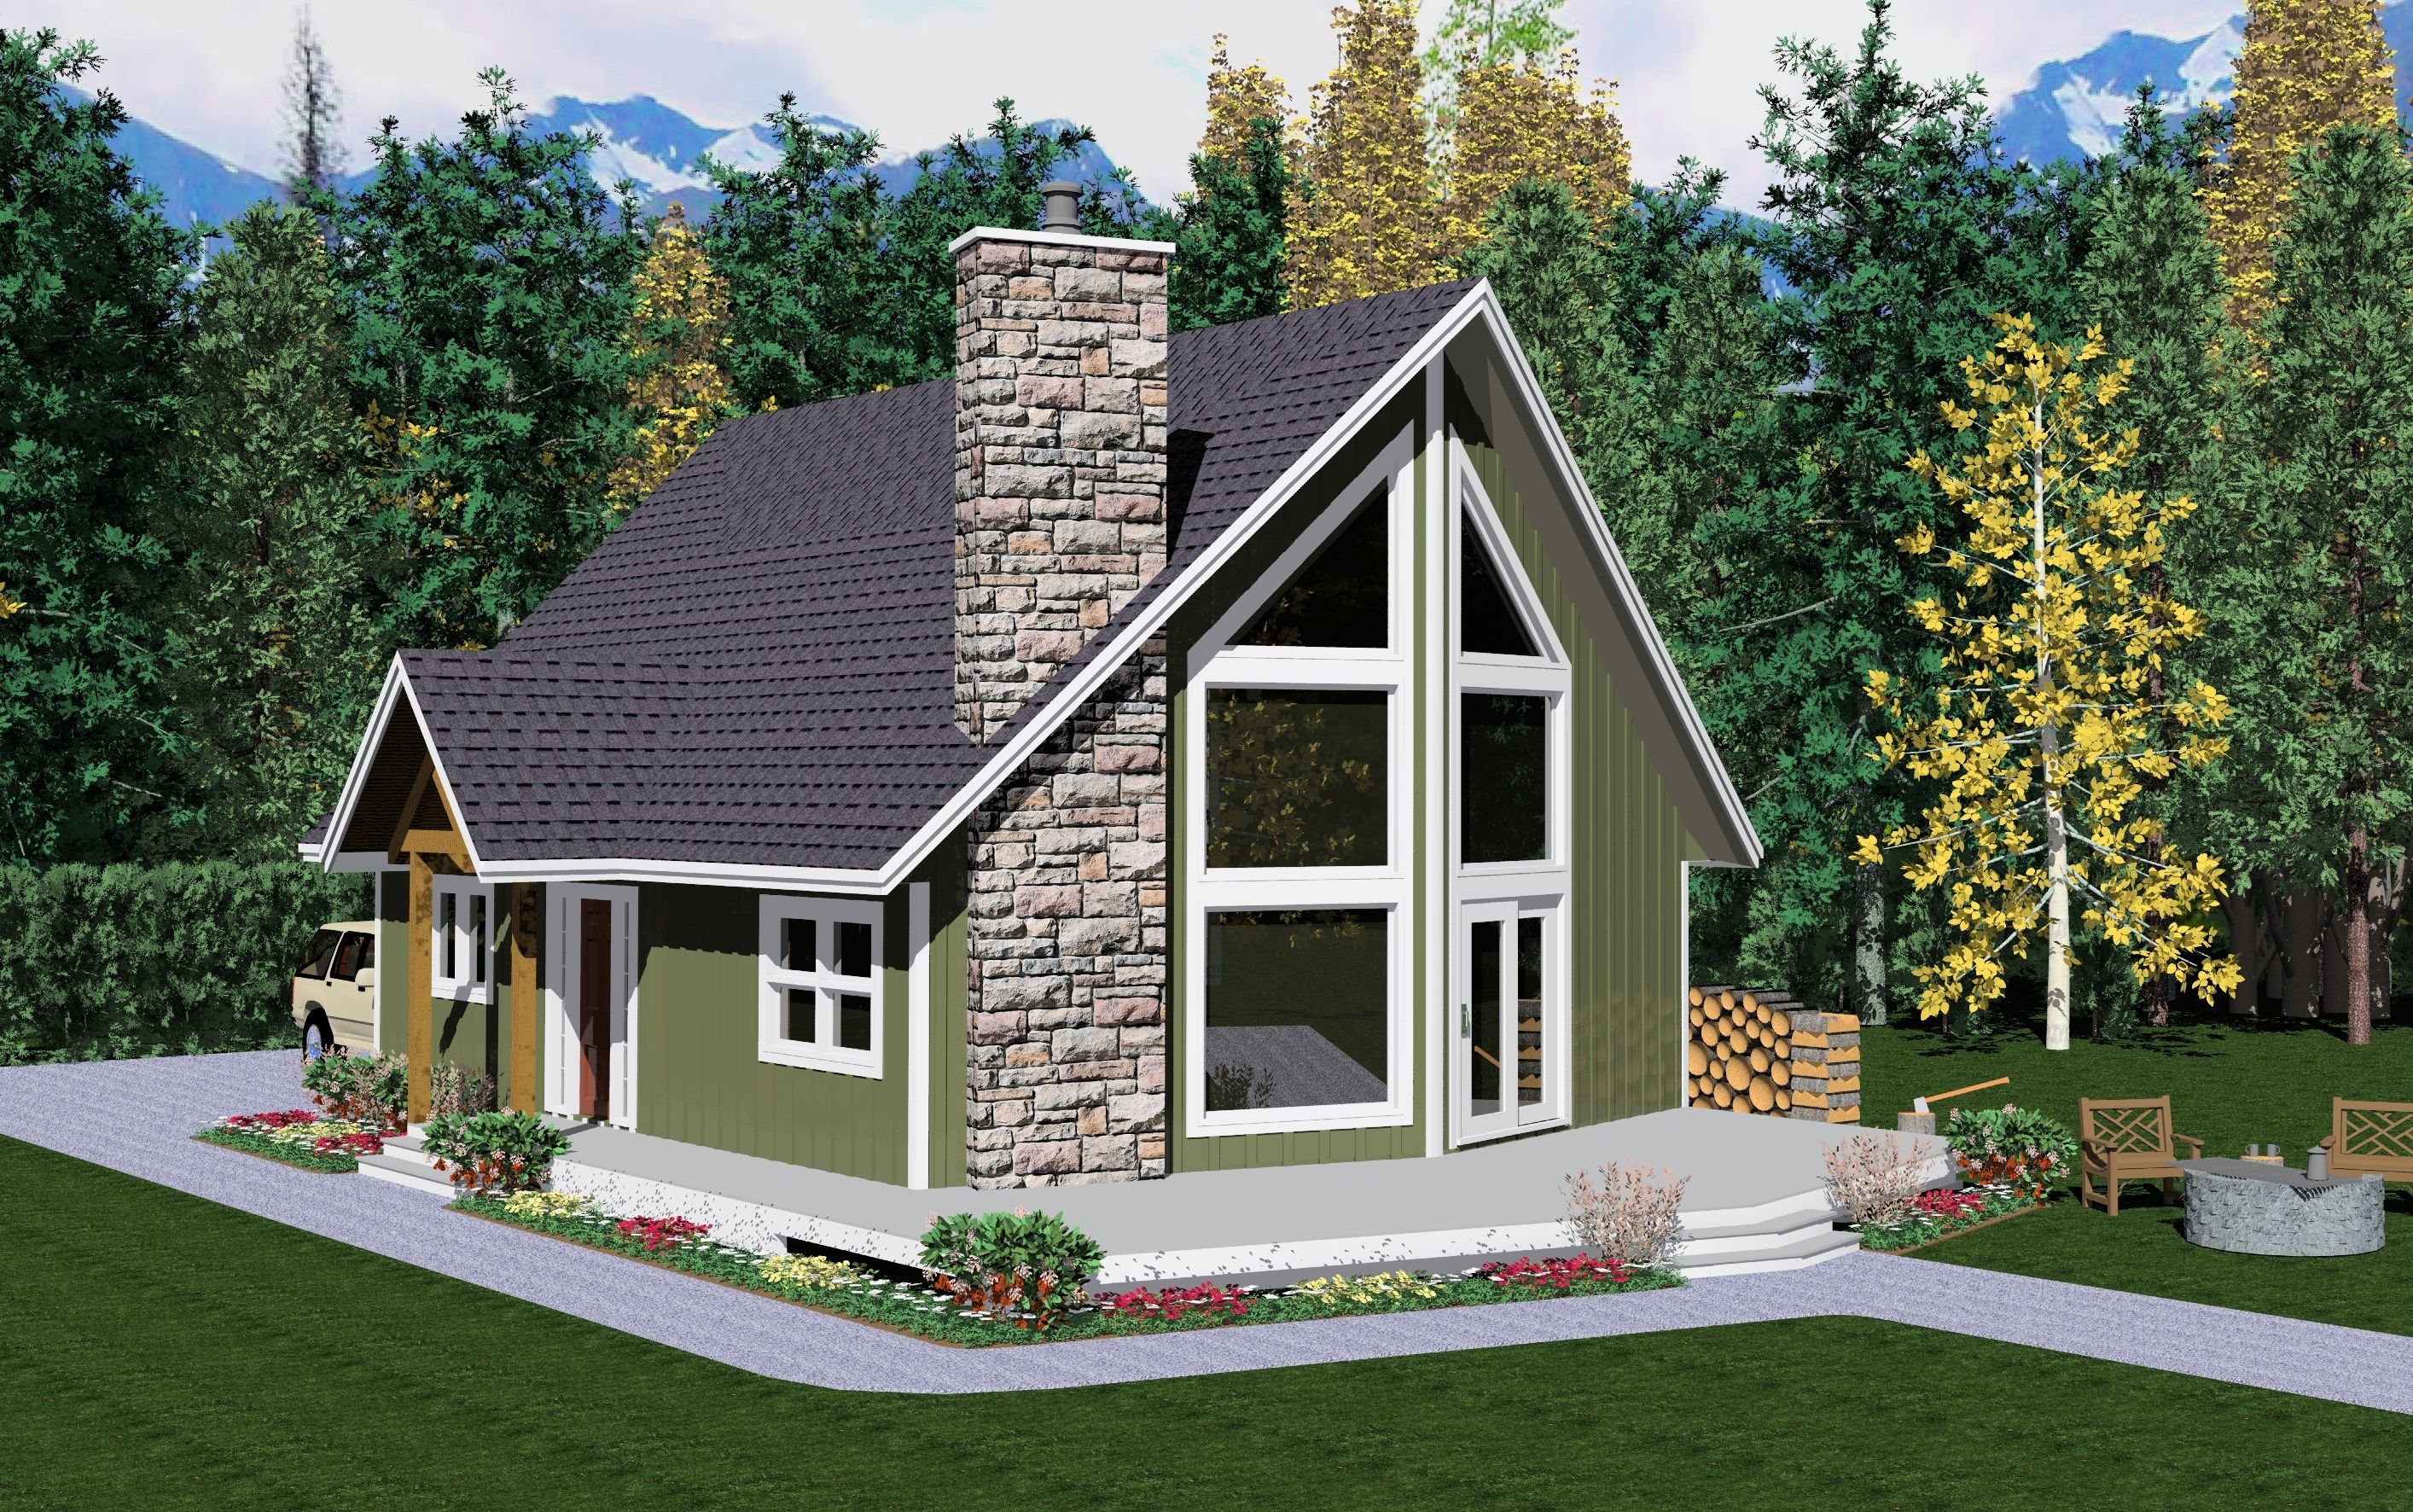 The McKenzie River - Prefabricated Home Plans   Winton Homes   This is what I want